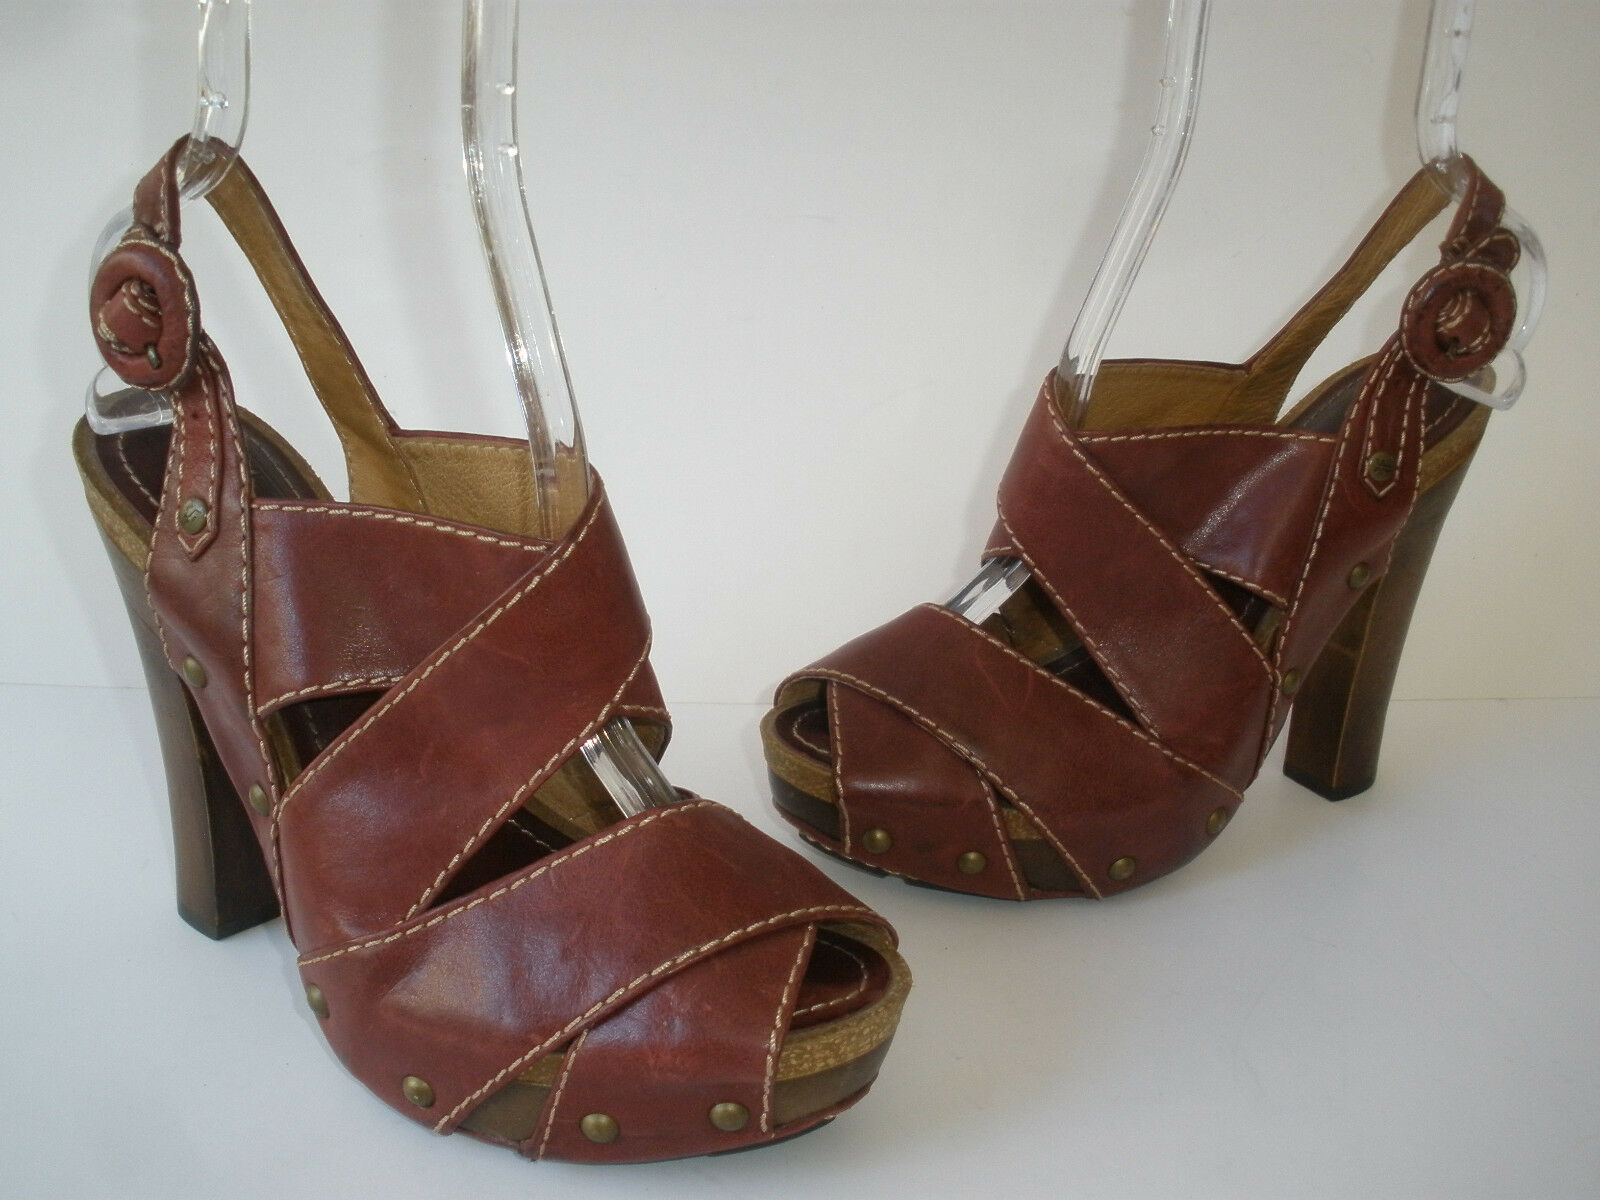 FRYE DARCY PEEP LEATHER SANDALS 5  HEELS WOMEN SIZE US 8M SUPER HOT  RARE